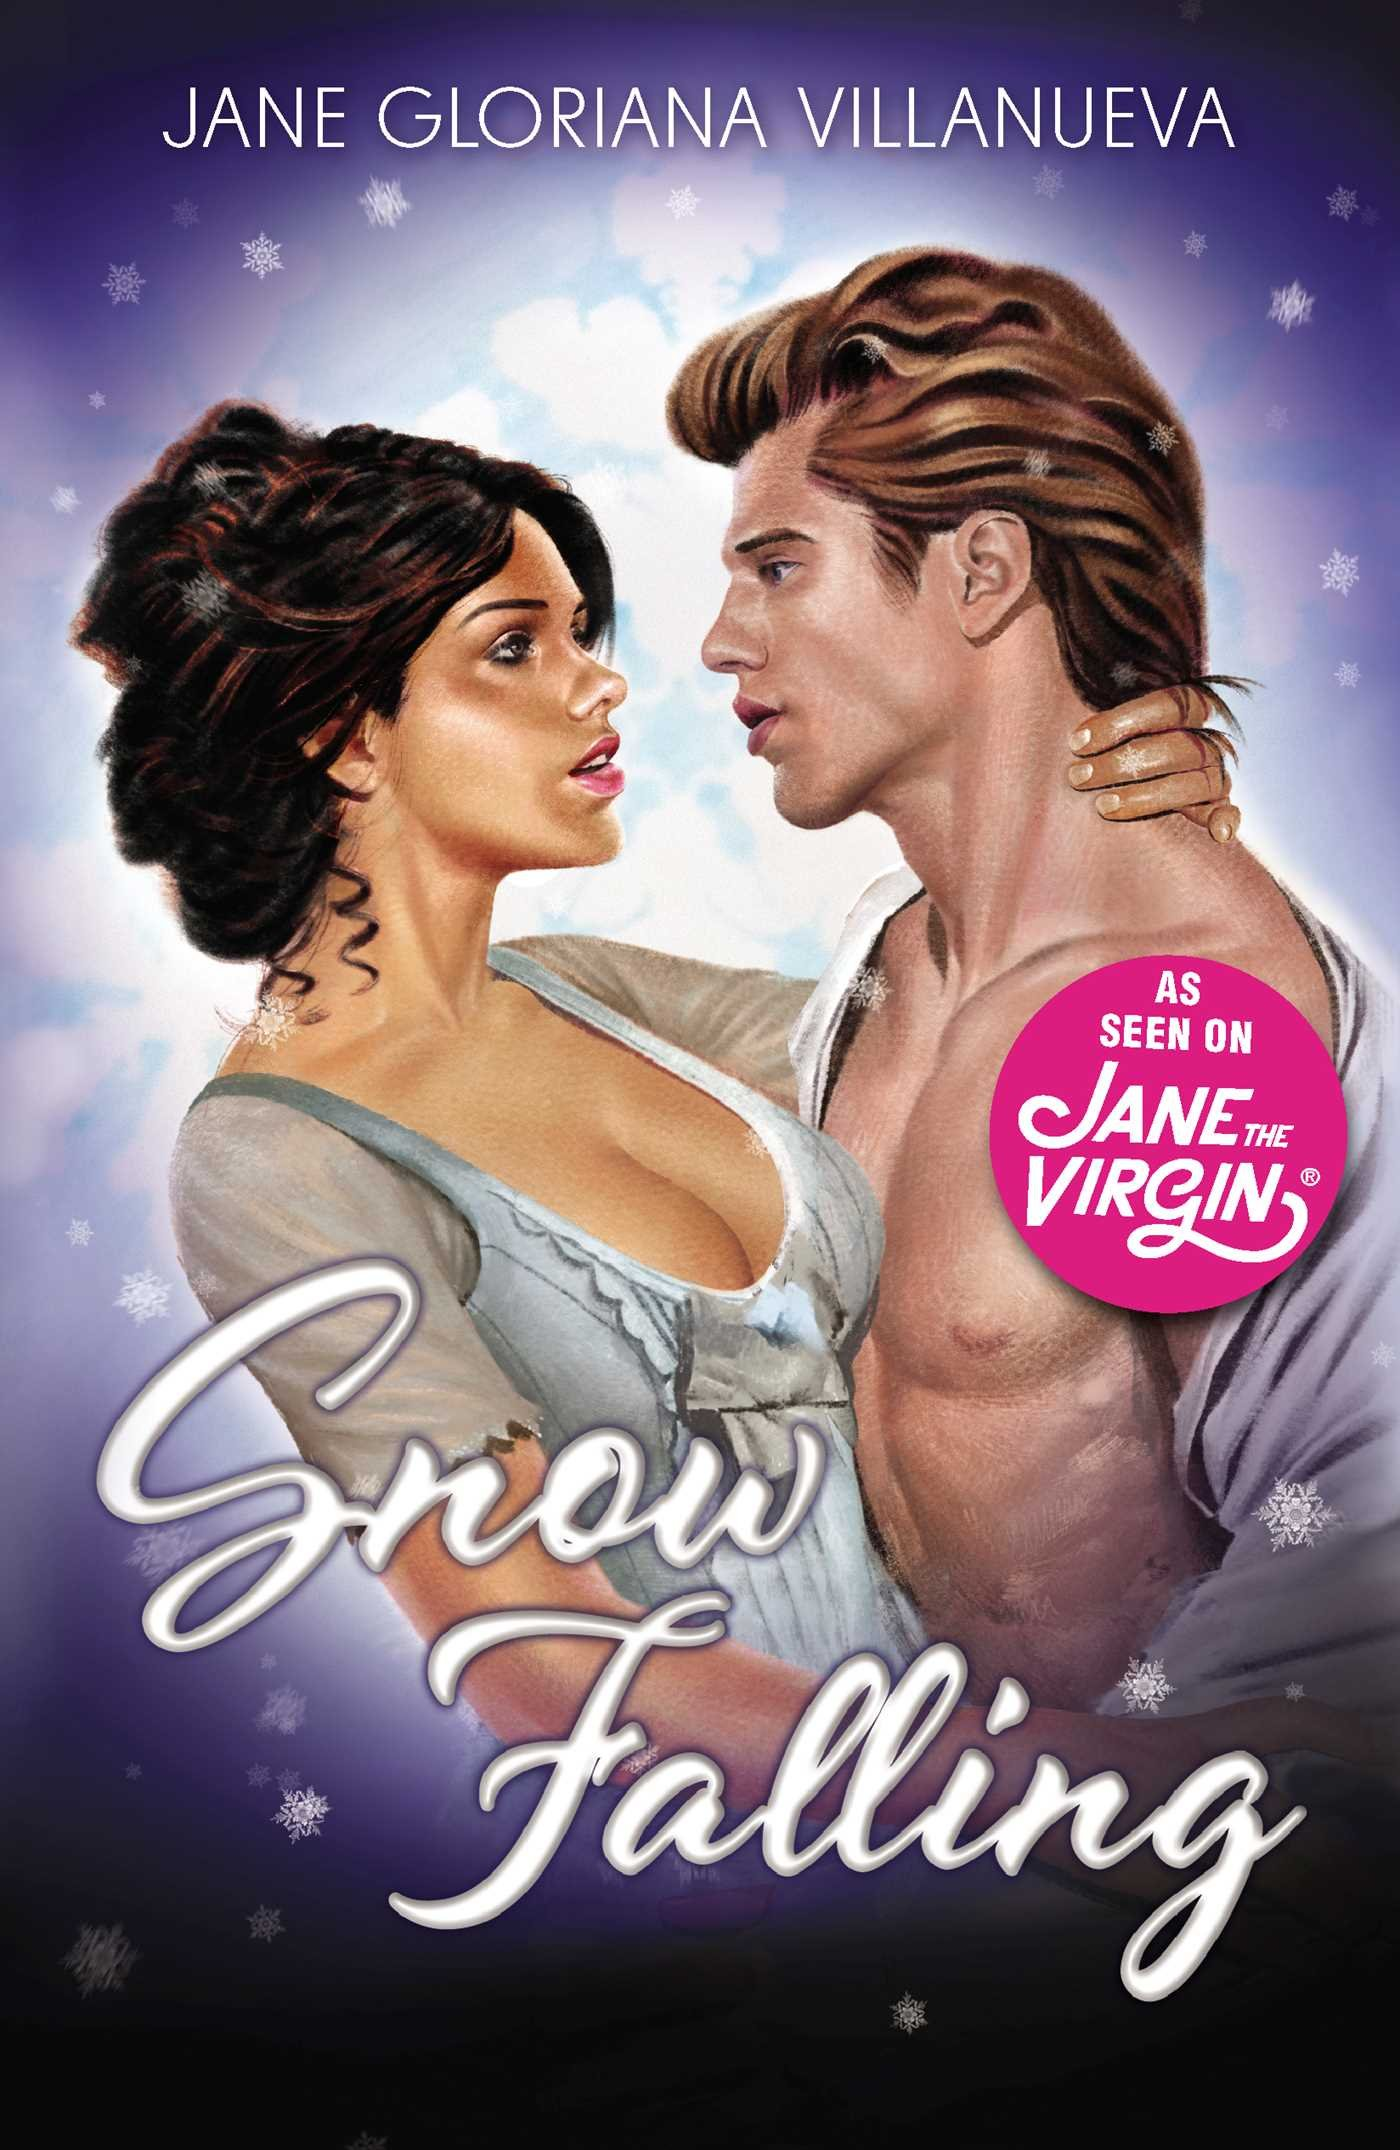 Amazon.com: Snow Falling (9781507206621): Villanueva, Jane Gloriana: Books